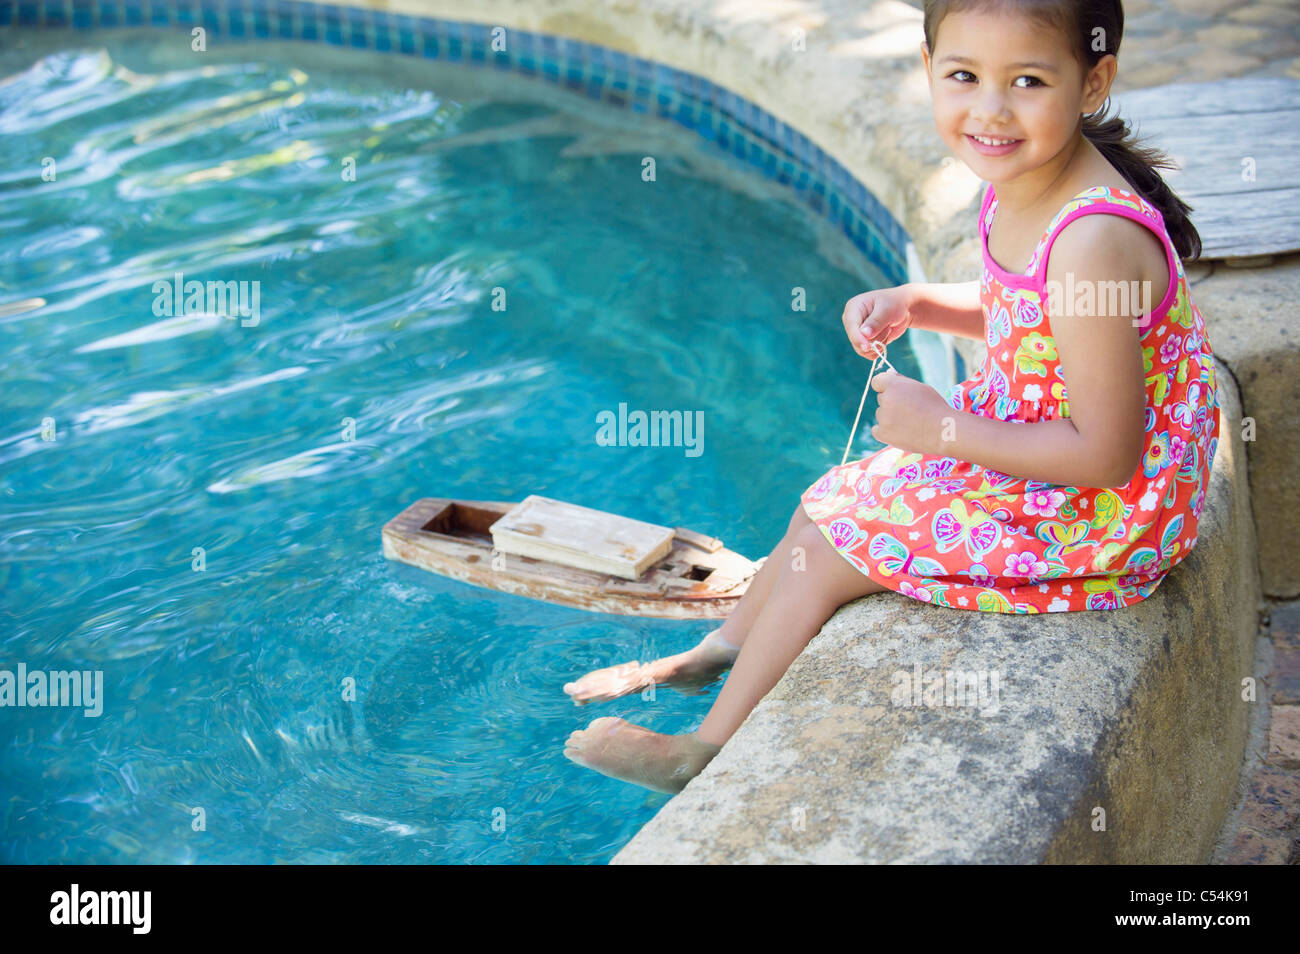 Girl sitting at edge of swimming pool with toy boat in water - Stock Image